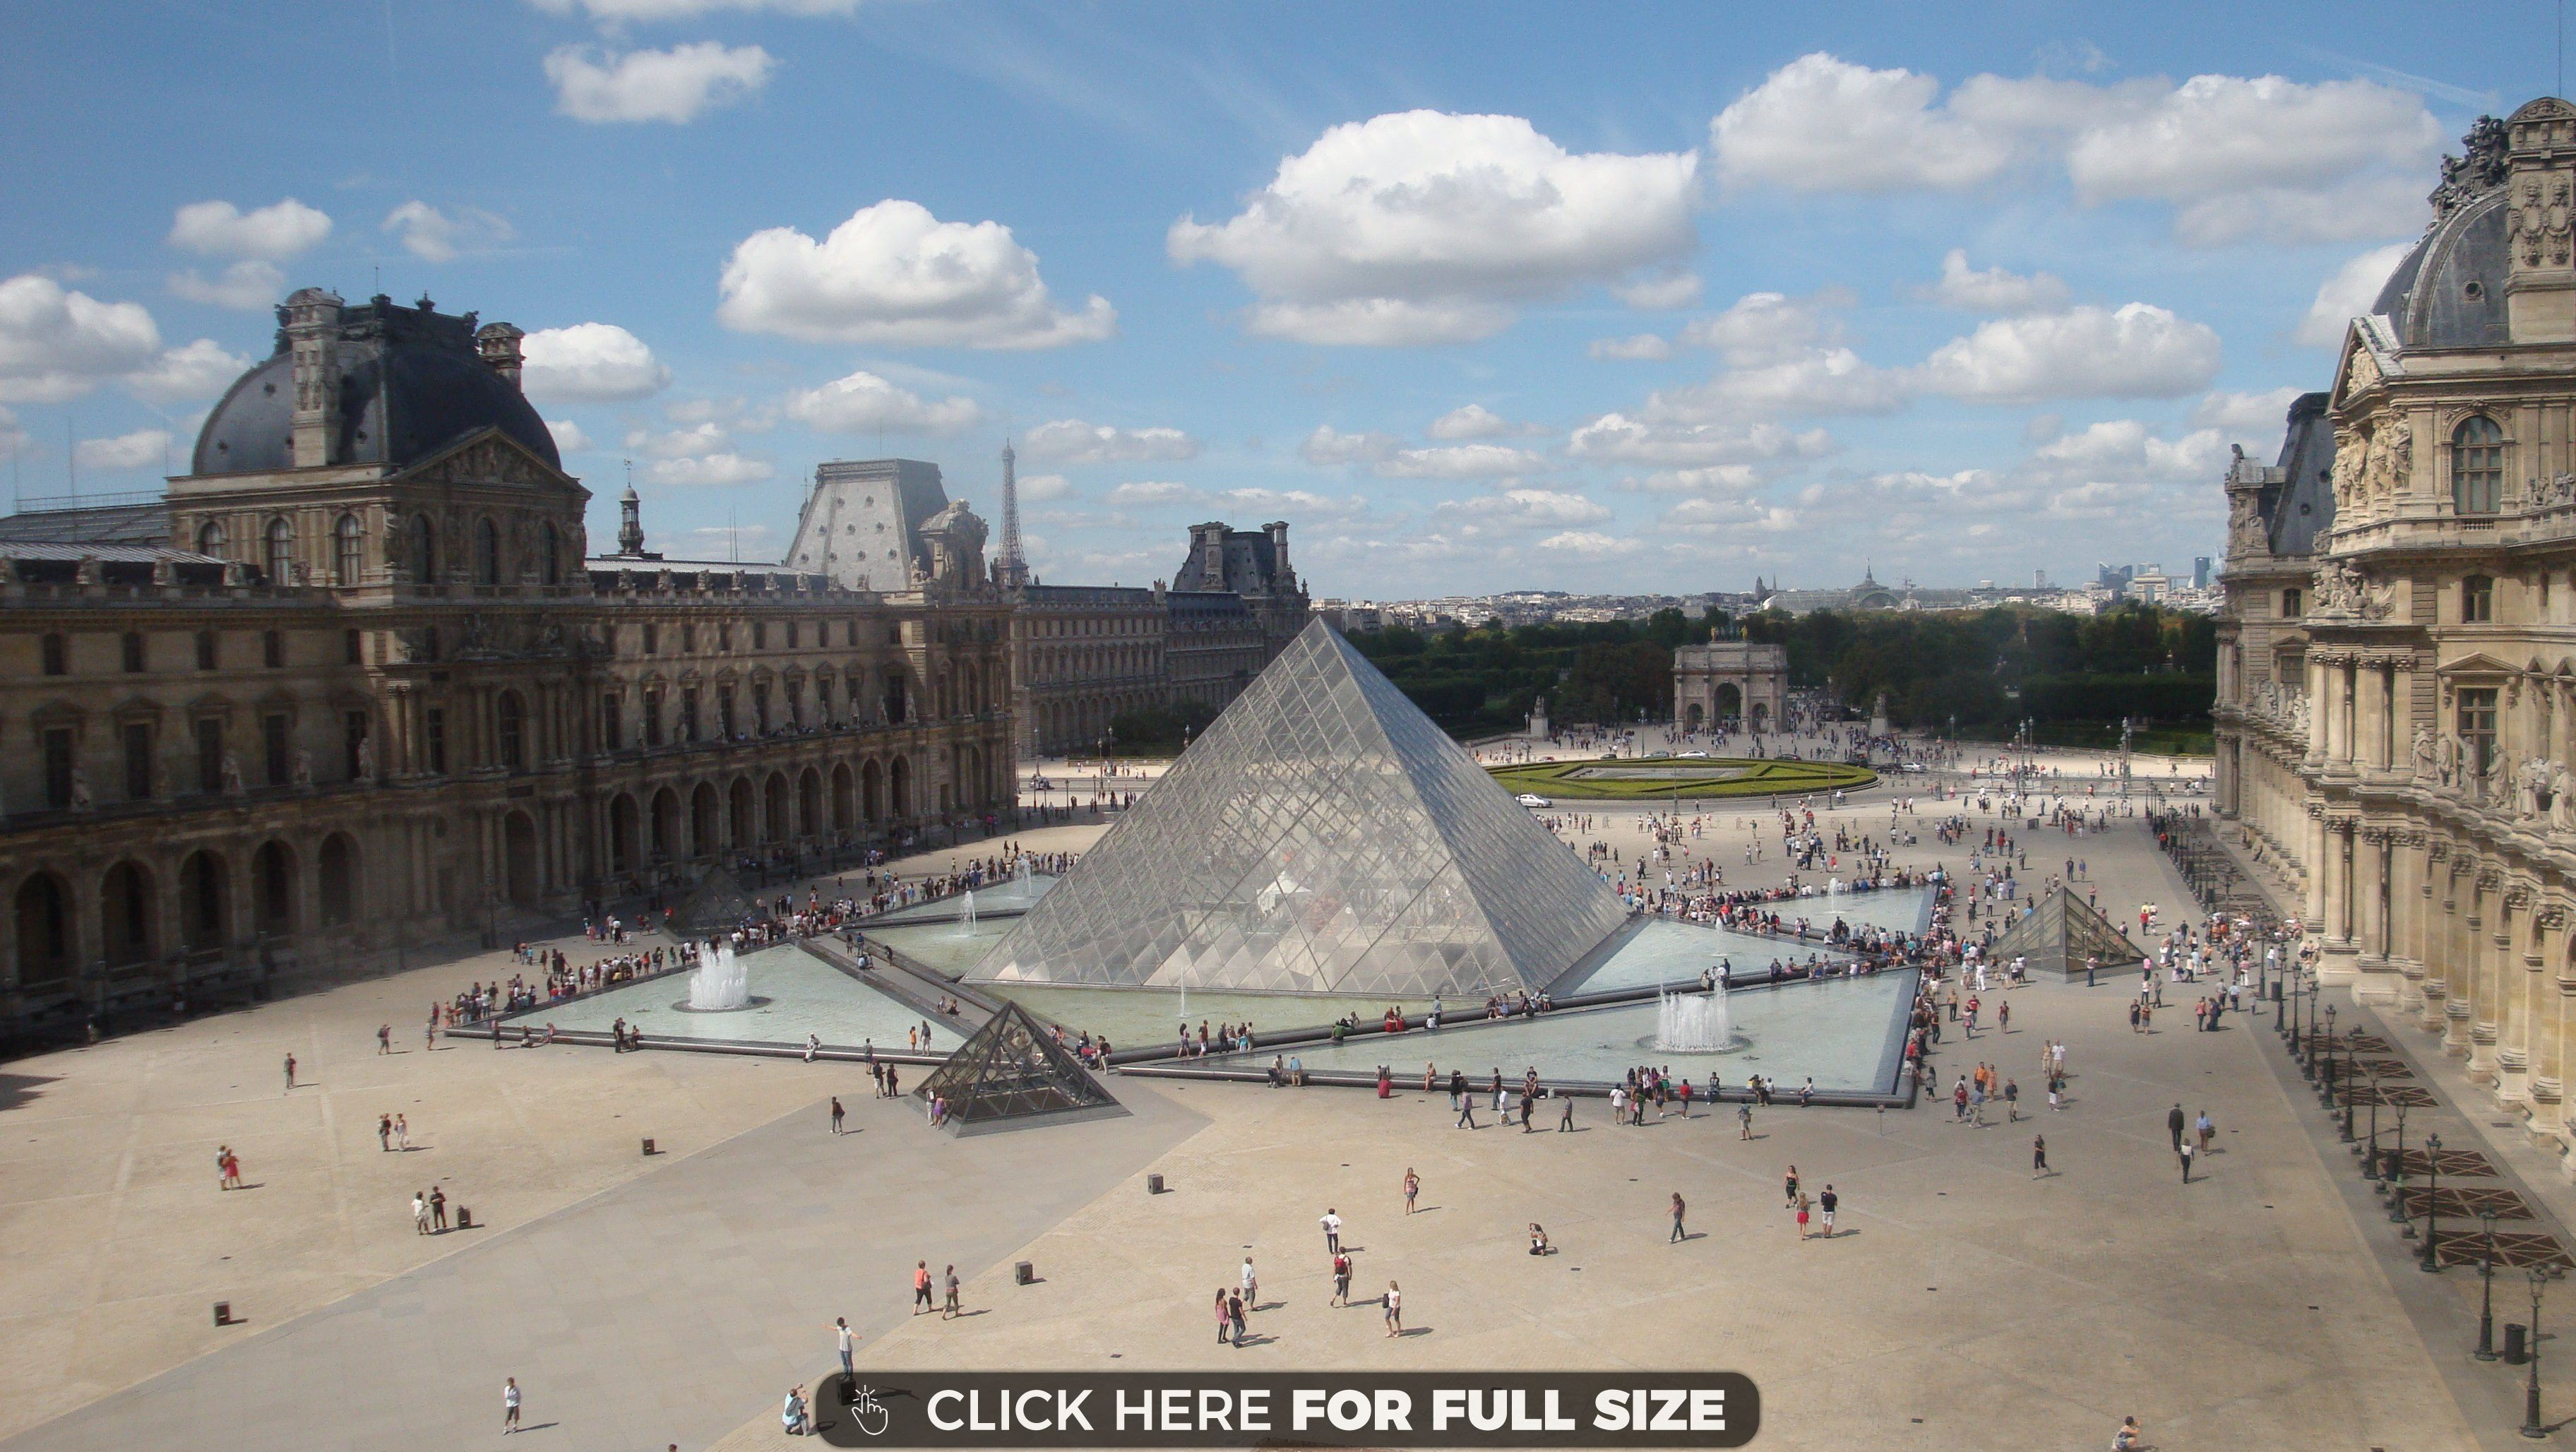 Best 51 The Louvre Wallpaper on HipWallpaper Louvre Wallpaper 3648x2056